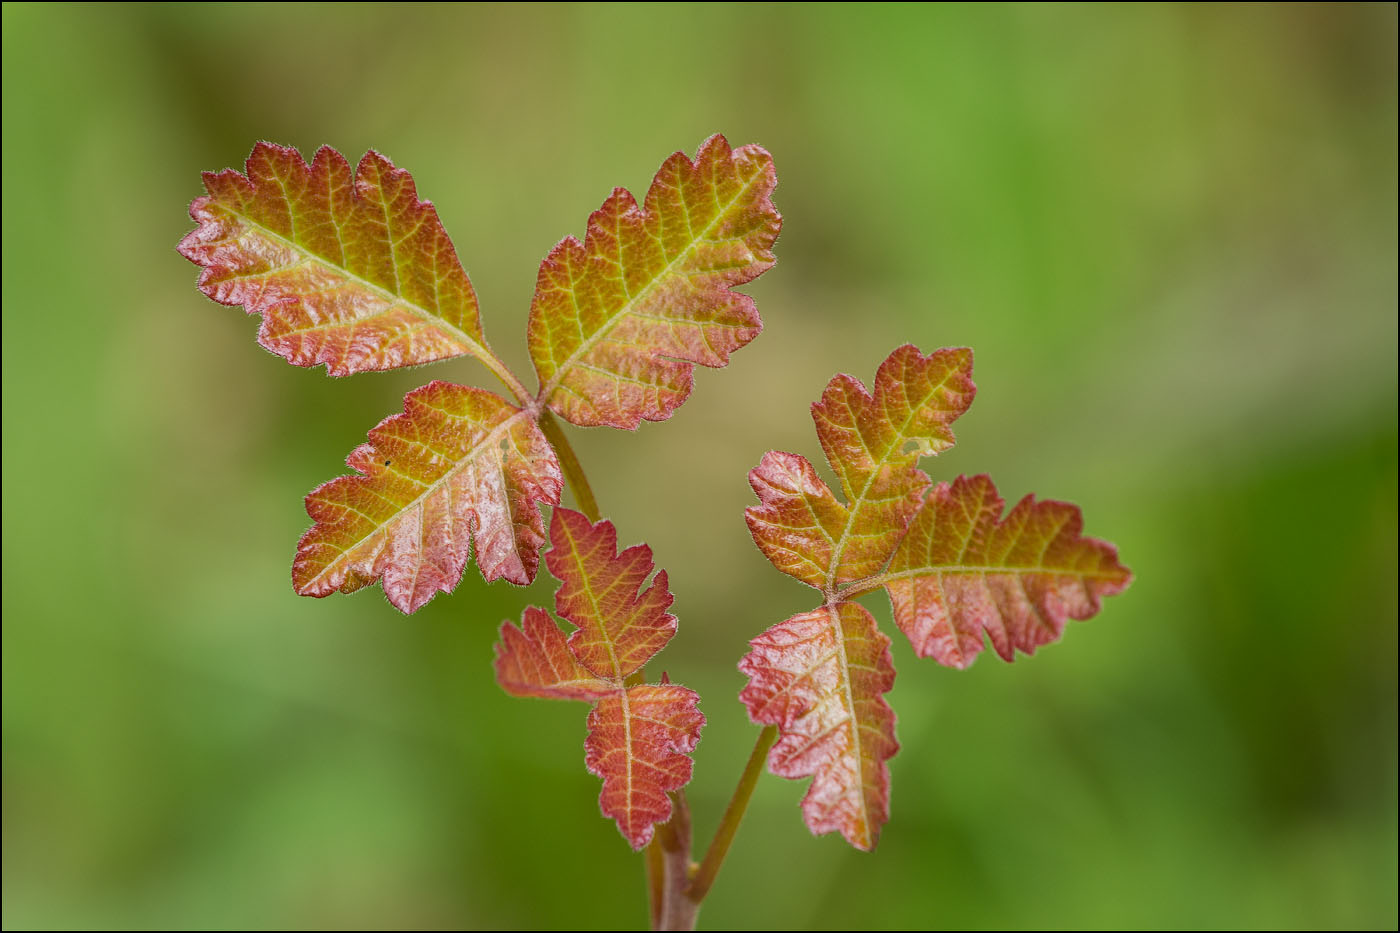 Young leaves of Poison Oak with reddish edges.